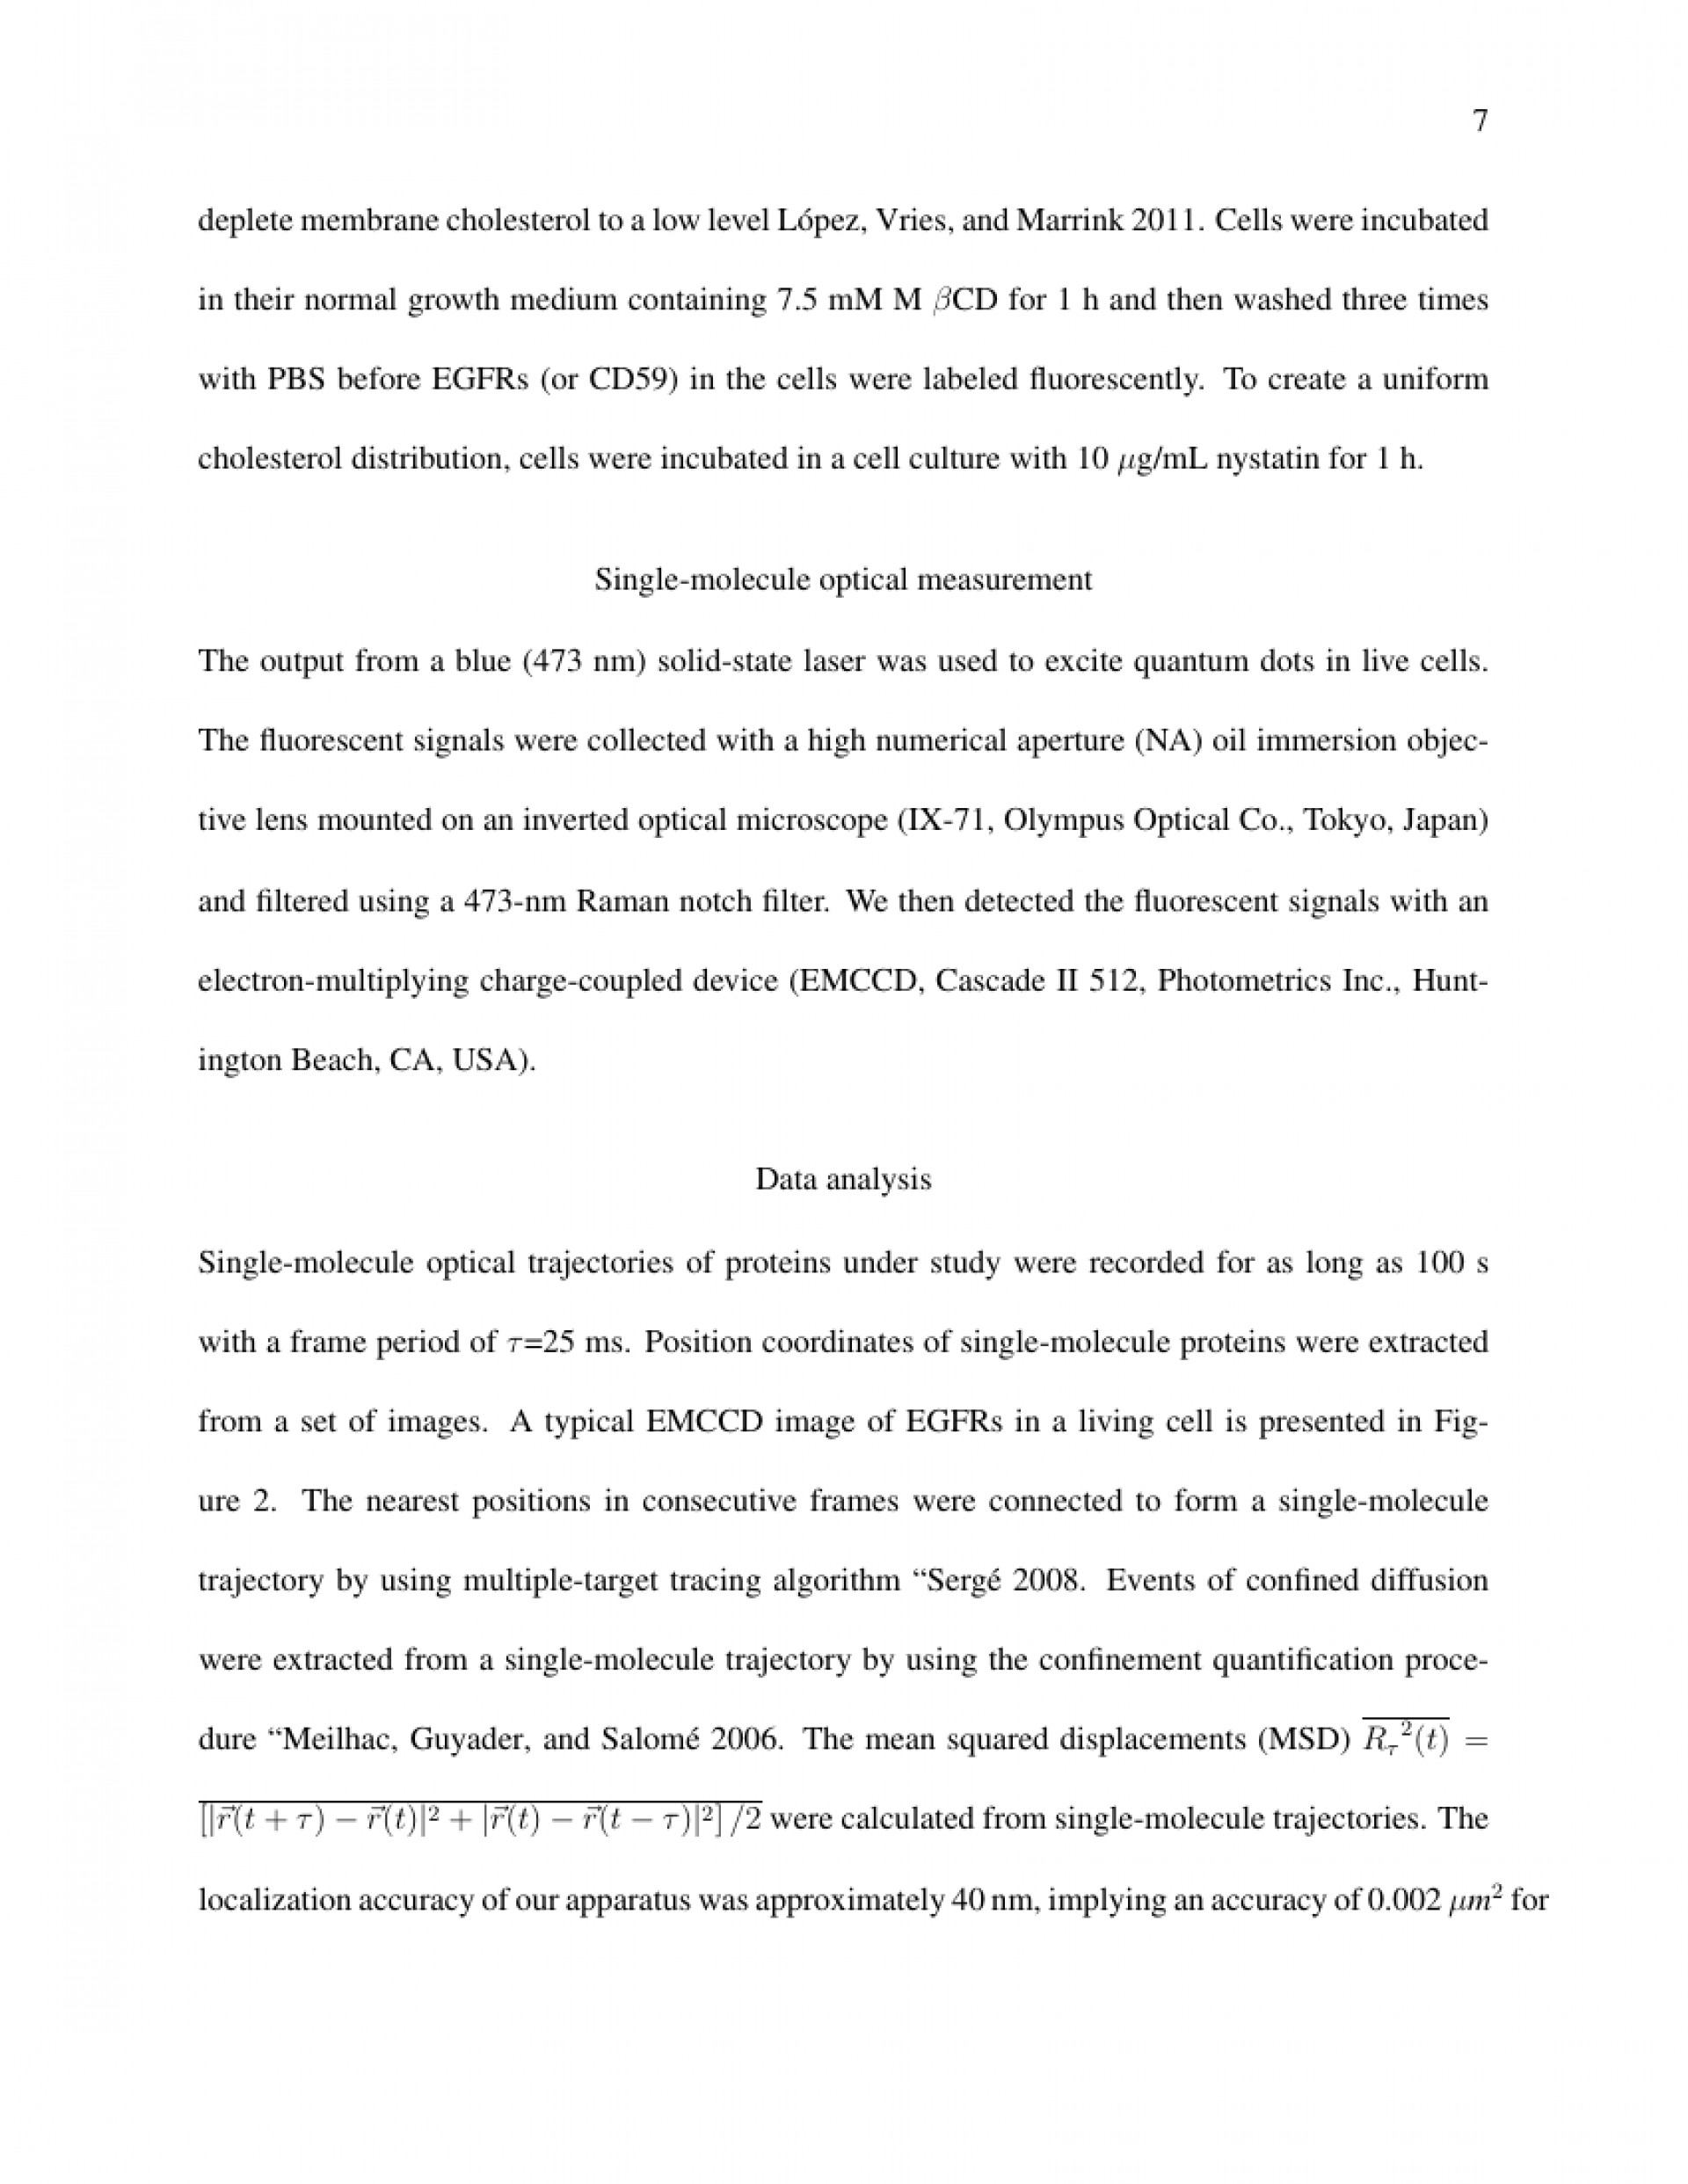 003 Article Format For Researchs Impressive Research Papers Example Paper Mla Ieee Pdf Apa Outline 1920